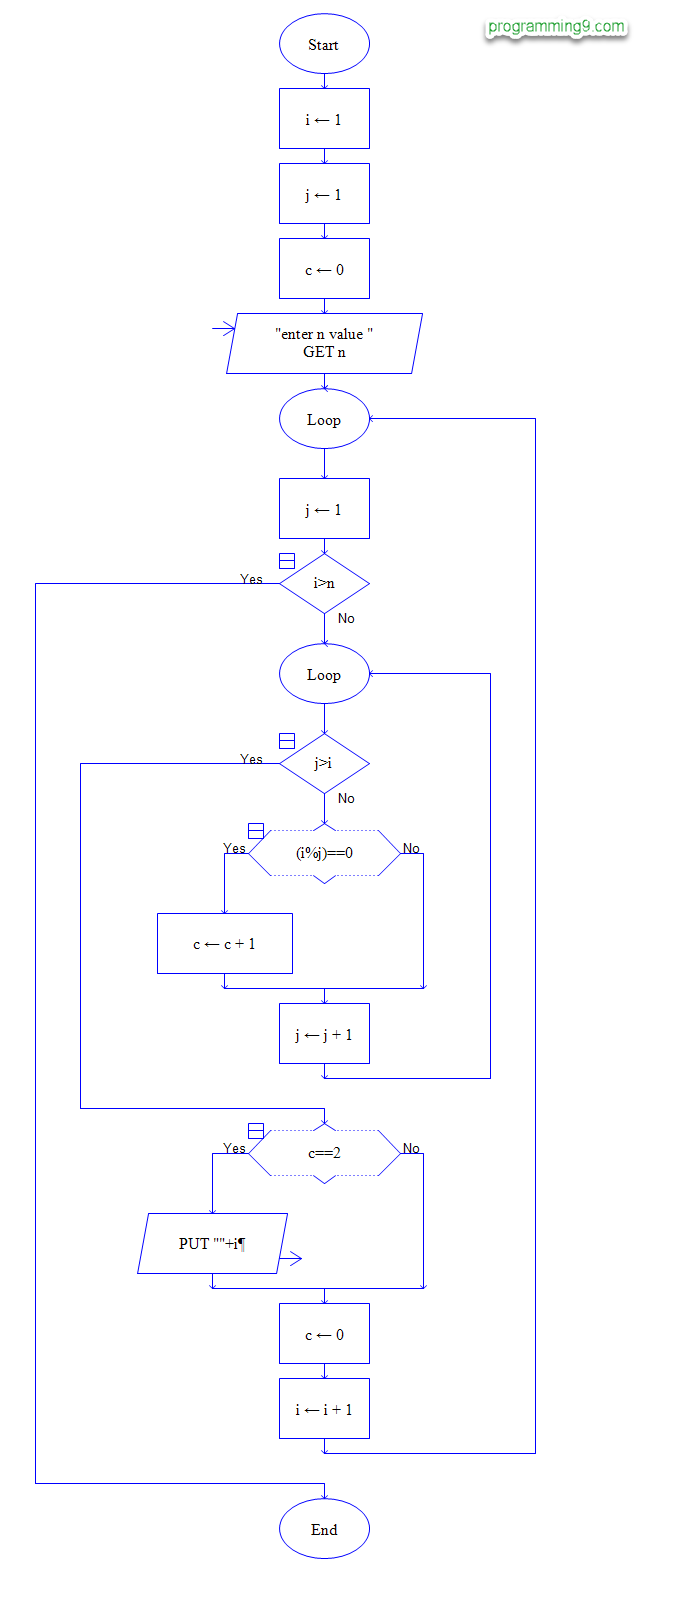 Flowchart to Find Prime Numbers in a Given Range